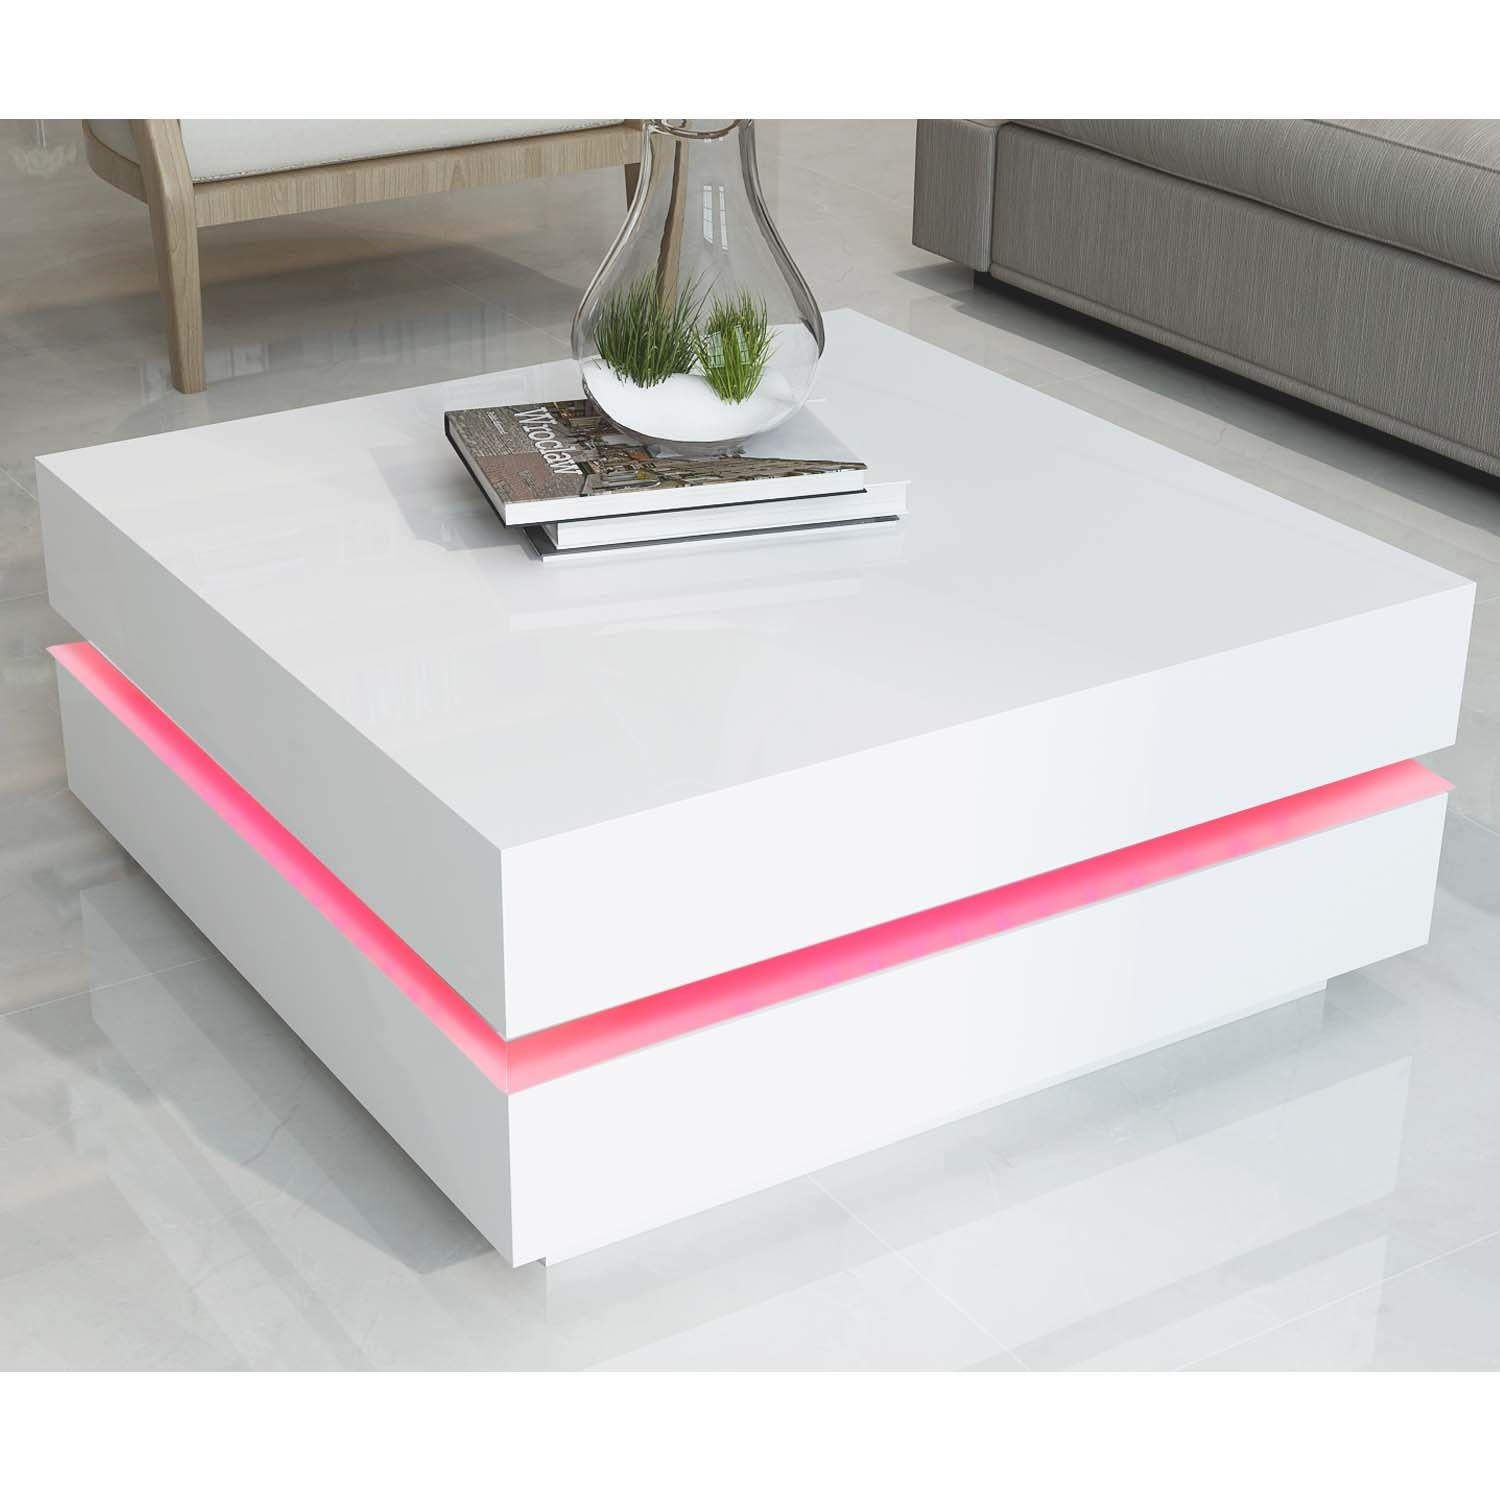 Straas Curved High Gloss Coffee Table In White Buy Modern High Gloss Coffee Table Furnit Coffee Table White Coffee Tables For Sale Contemporary Coffee Table [ 691 x 1174 Pixel ]